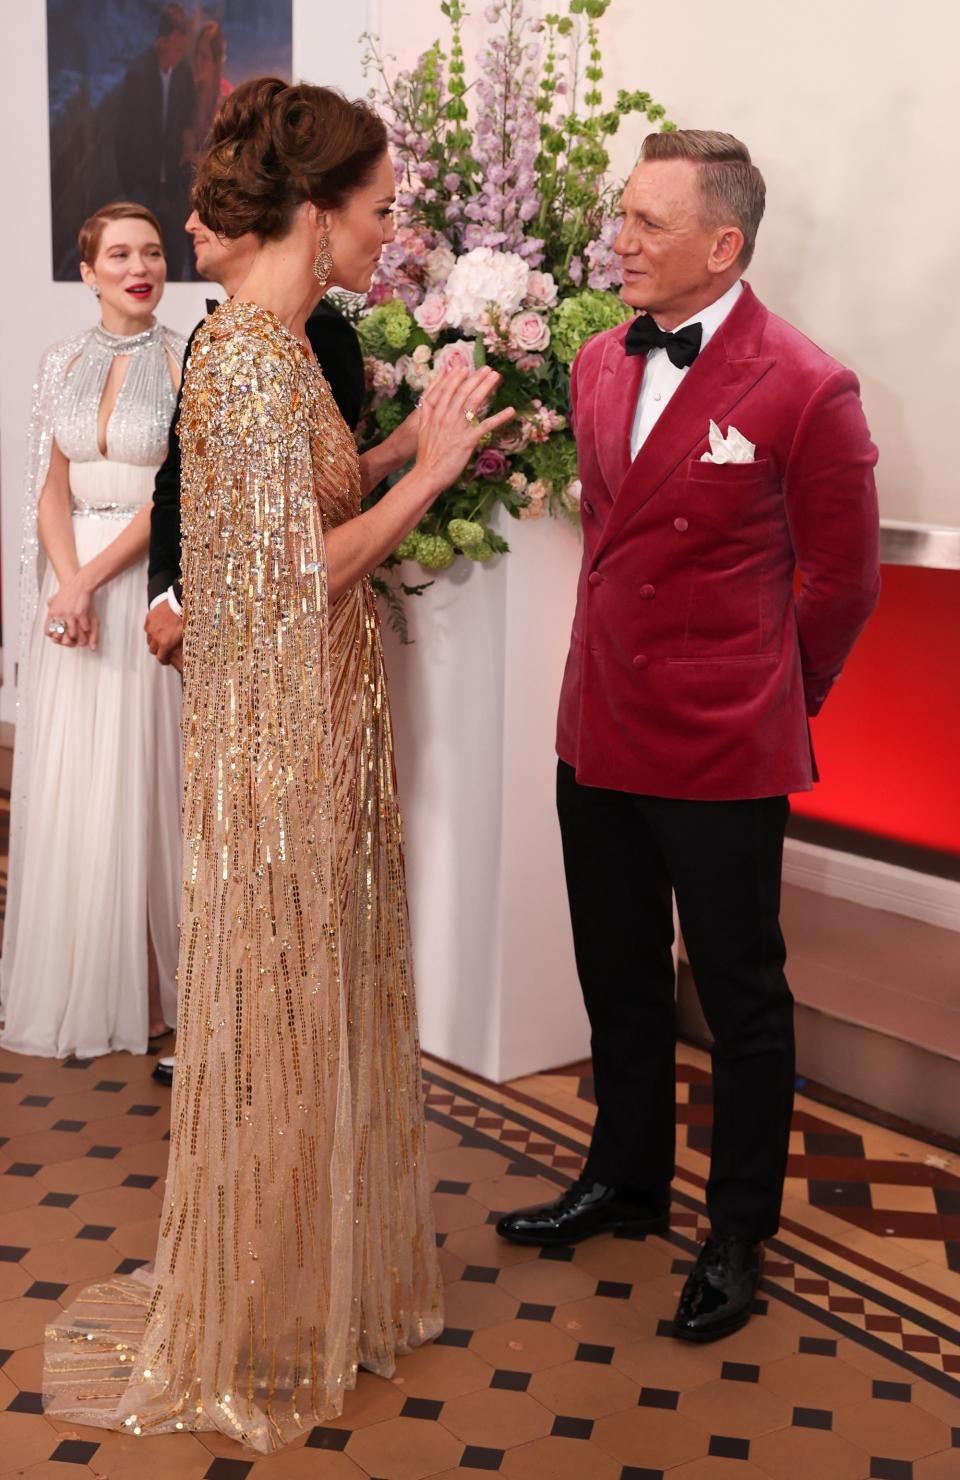 Middleton greeted James Bond star, Daniel Craig, before the premiere of